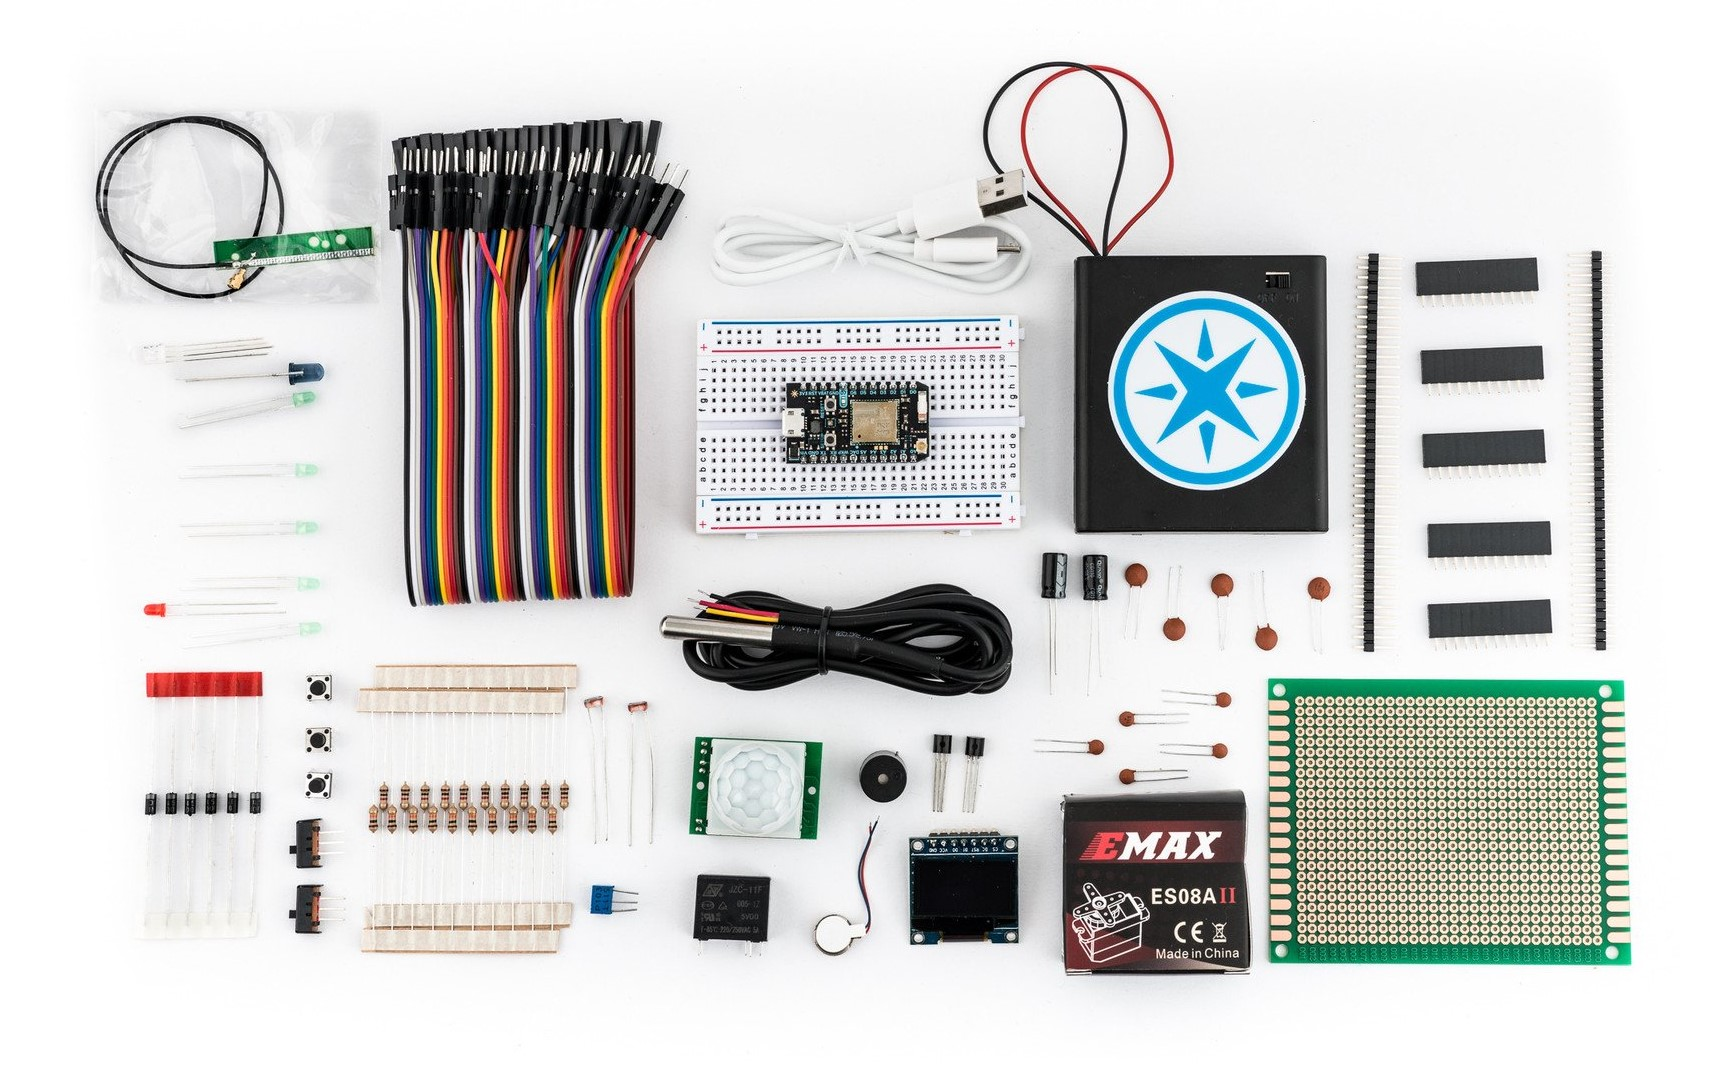 Particle Photon Maker Kit: Everything you need to start building